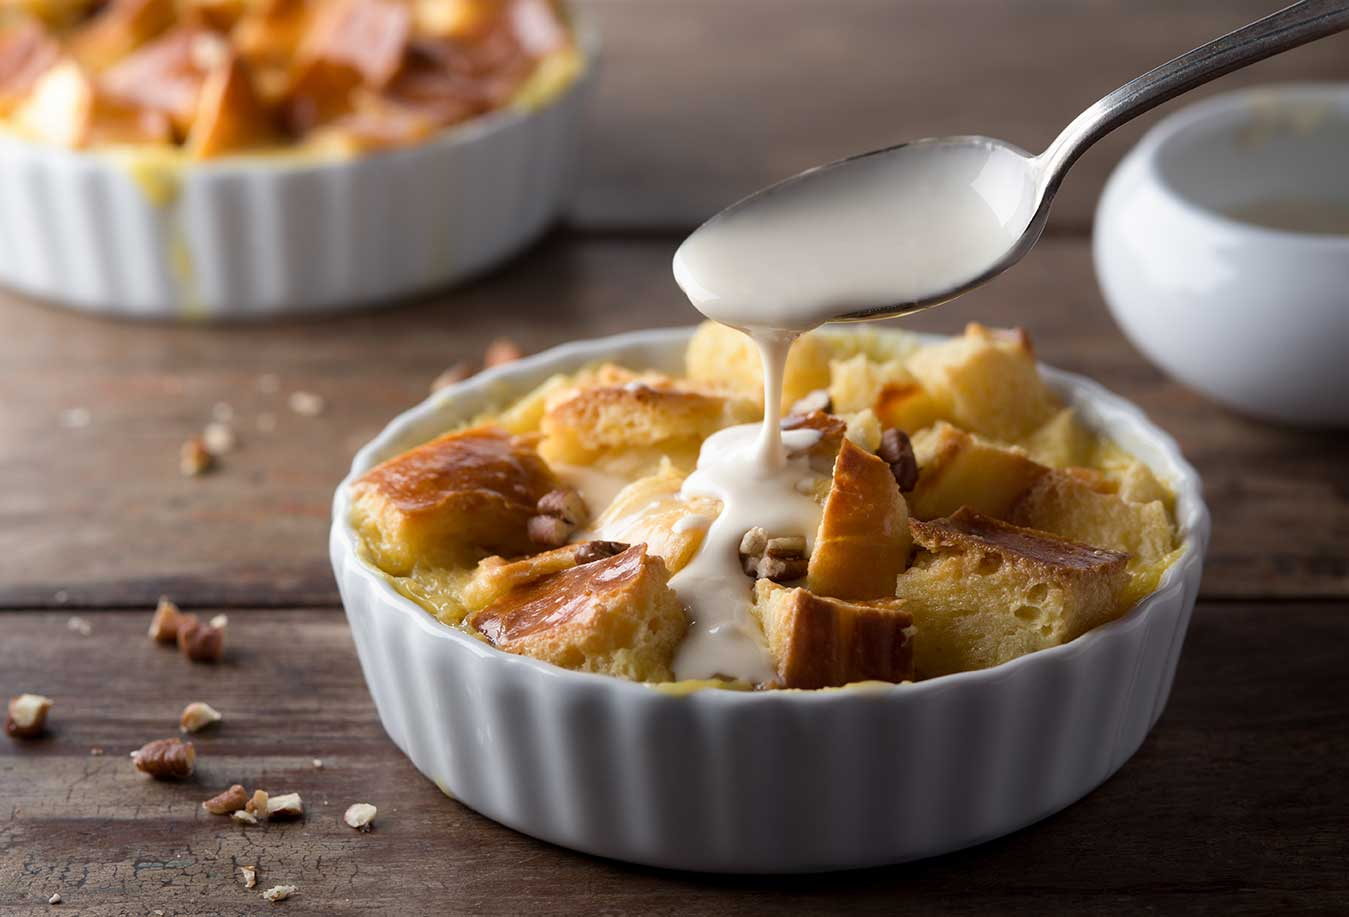 New Orleans Bread Pudding With Bourbon Caramel Sauce